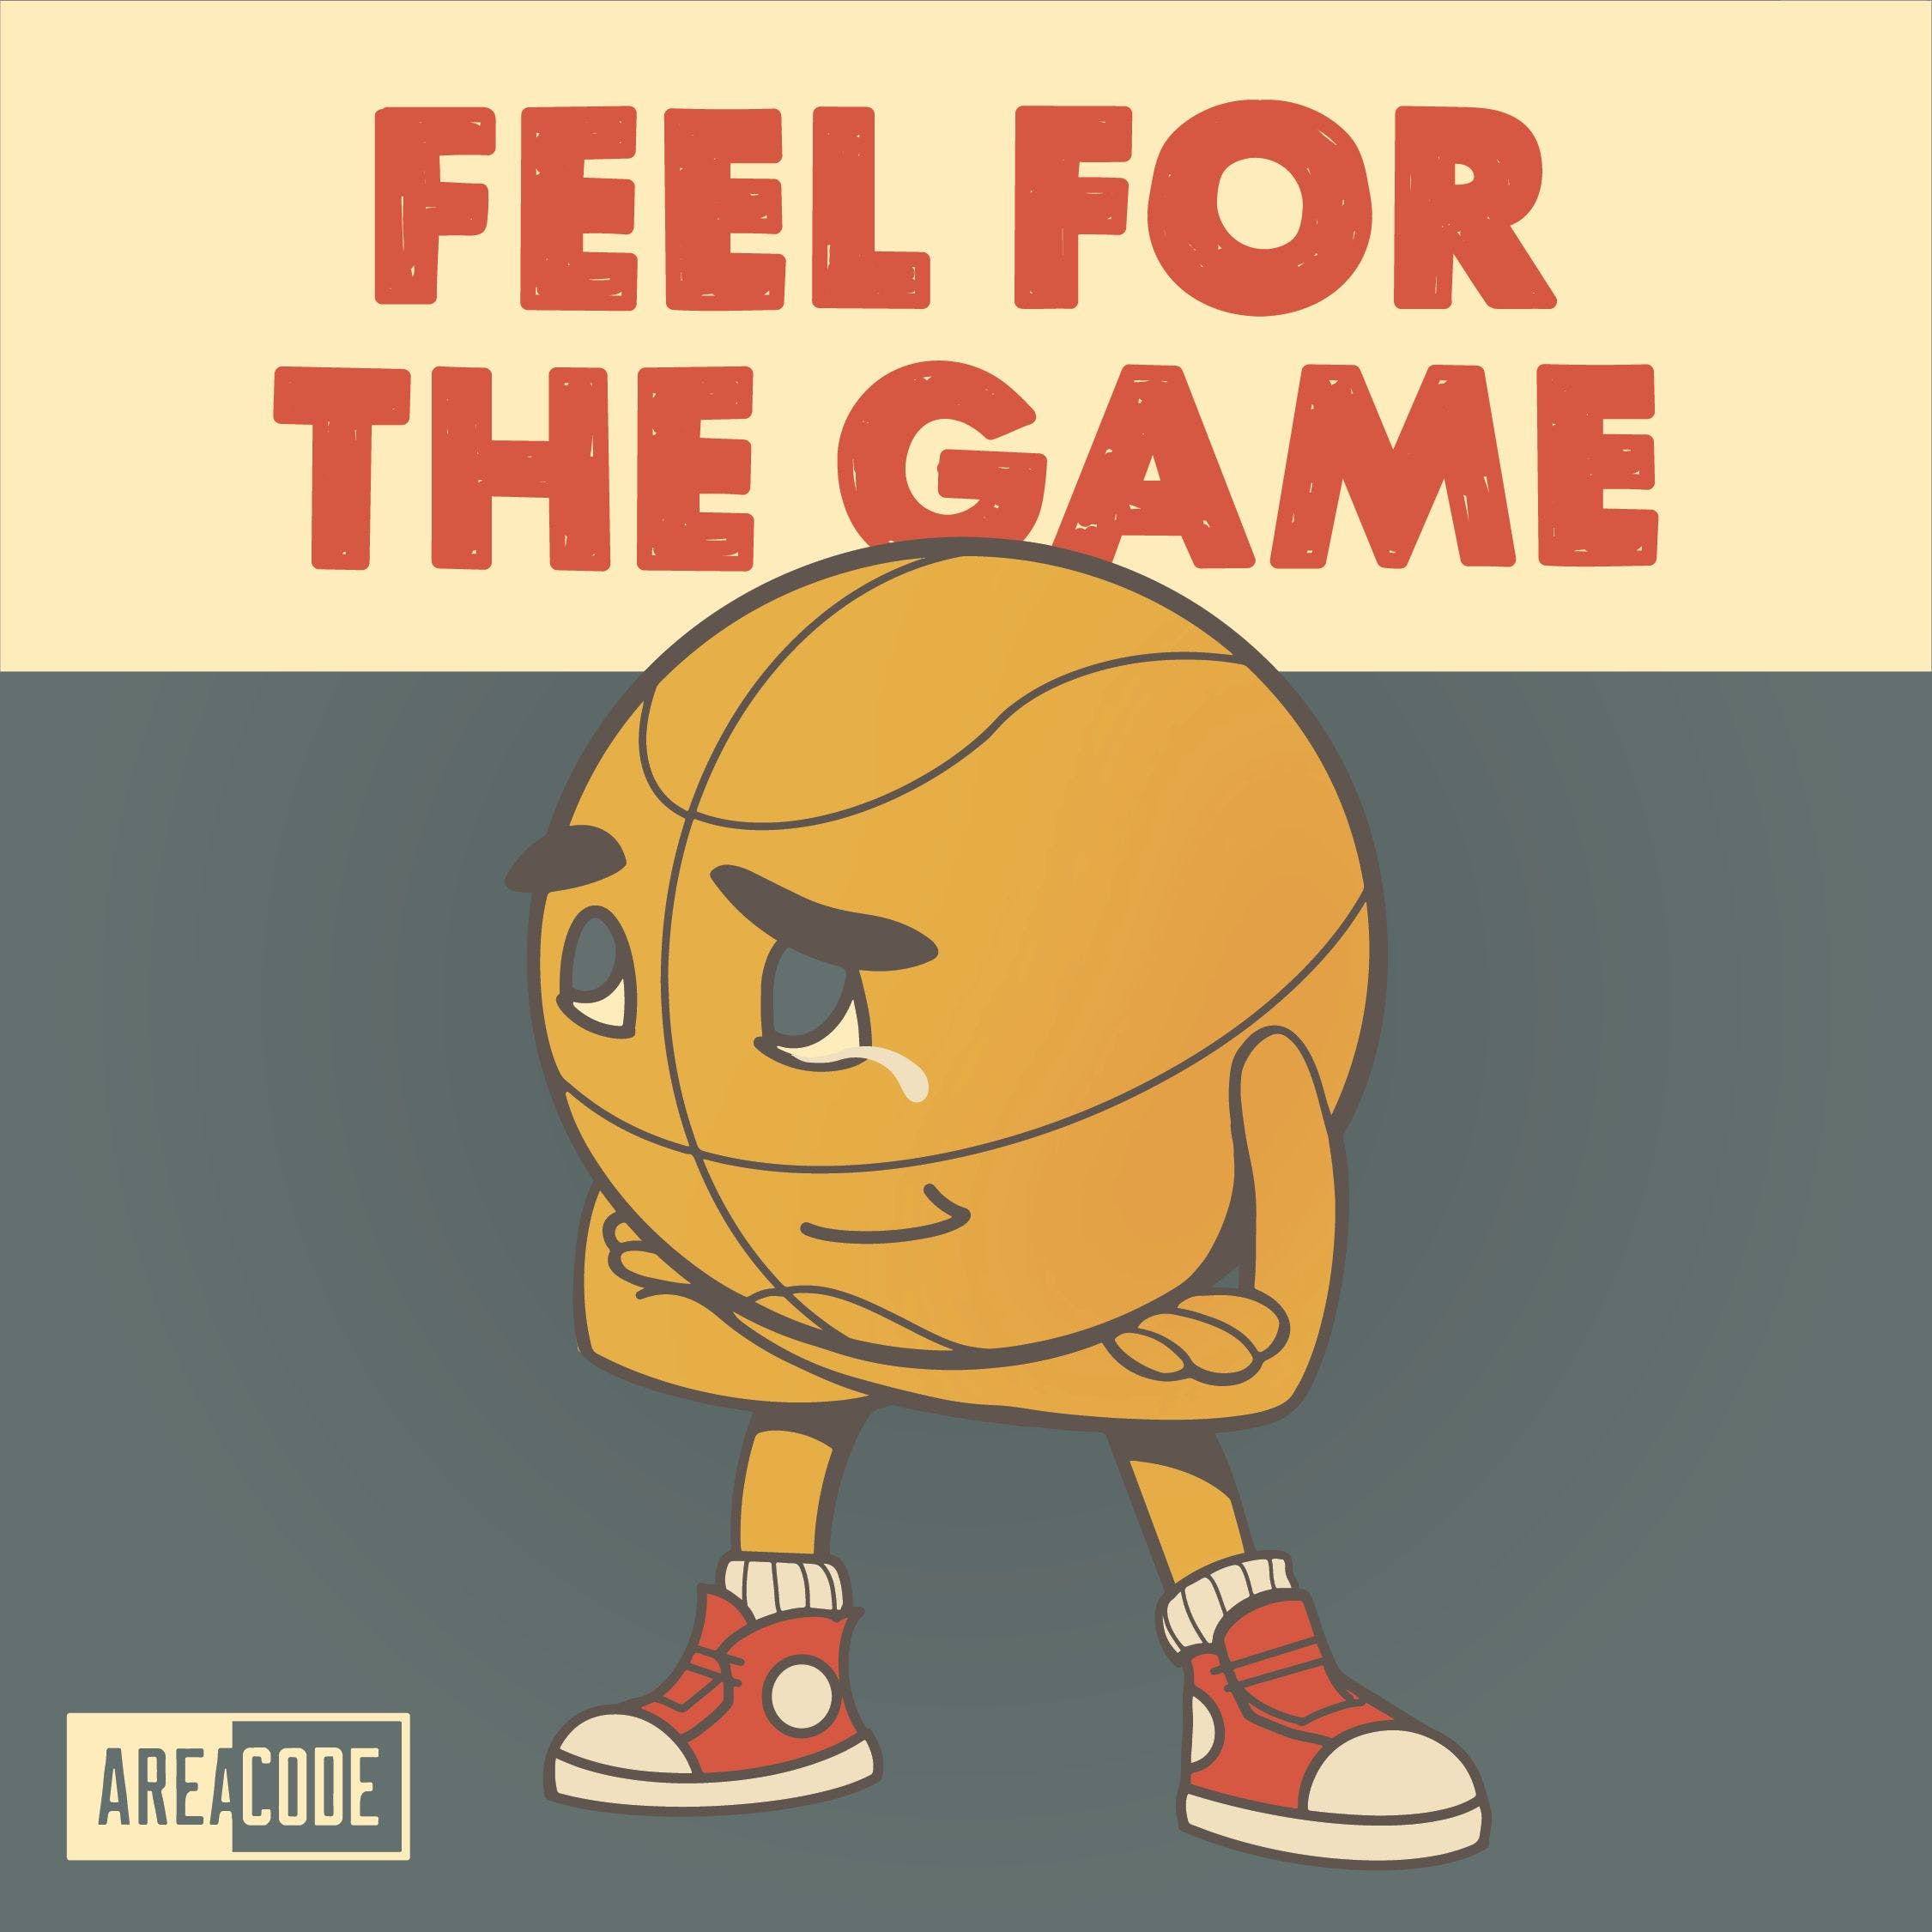 Feel for the Game